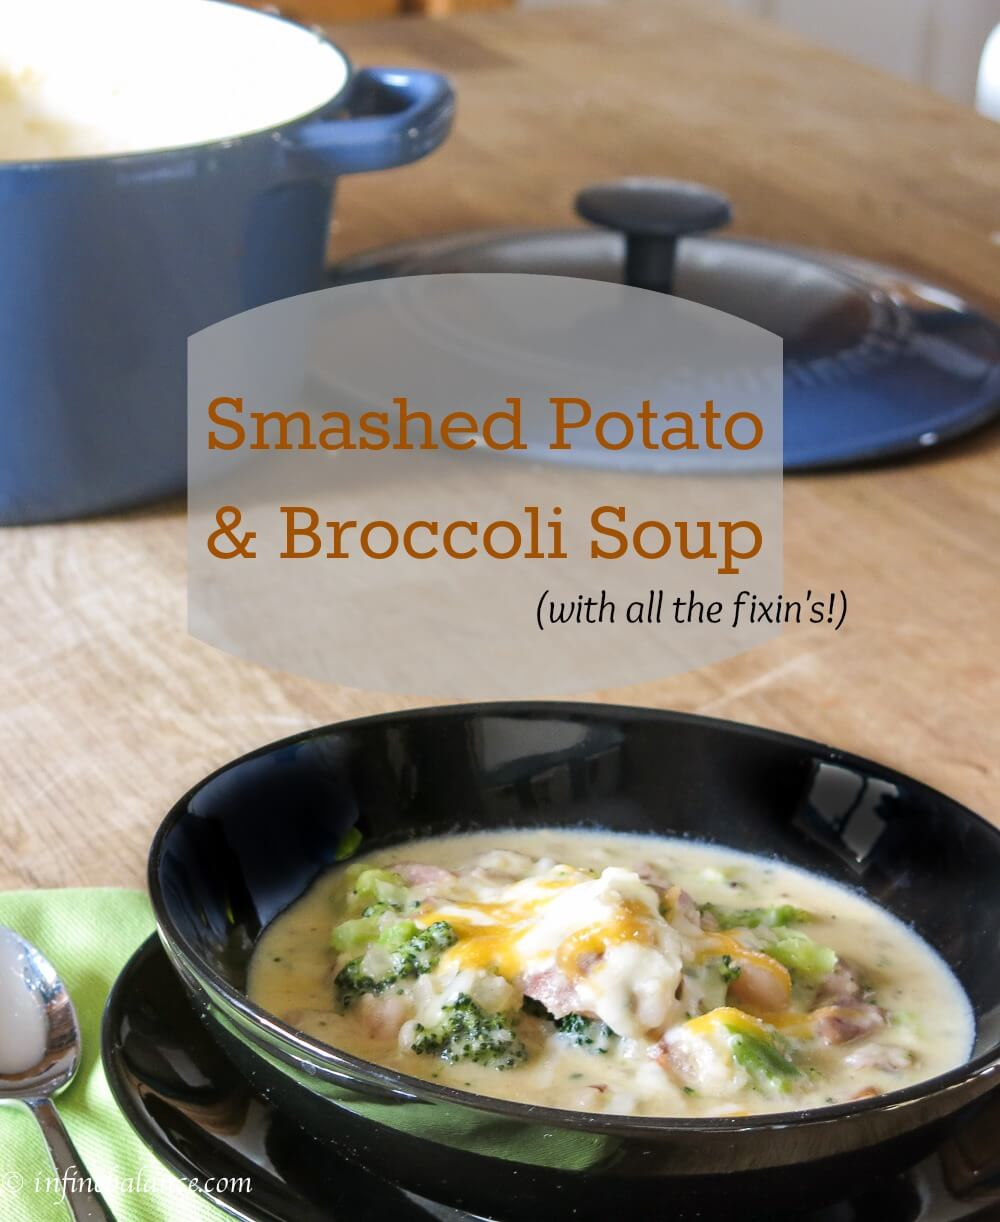 smashed potato and broccoli soup | infinebalance.com